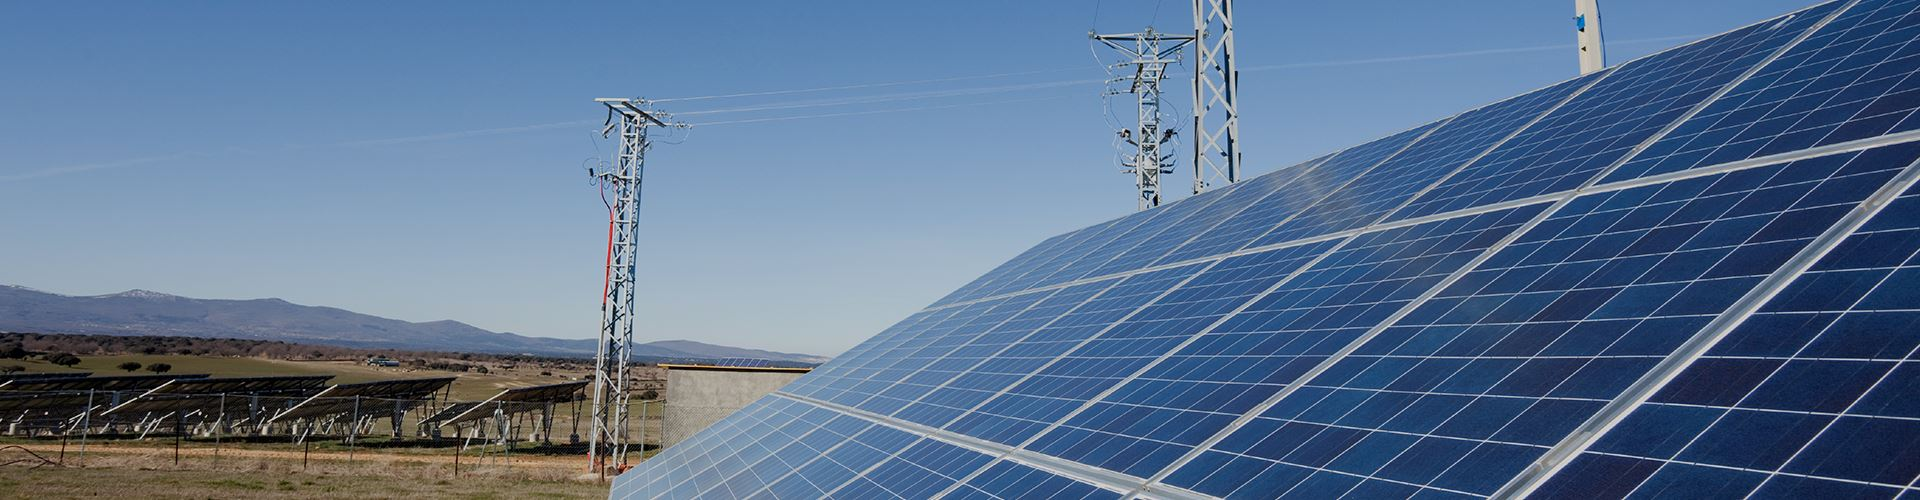 A solar panel array with transmission towers.